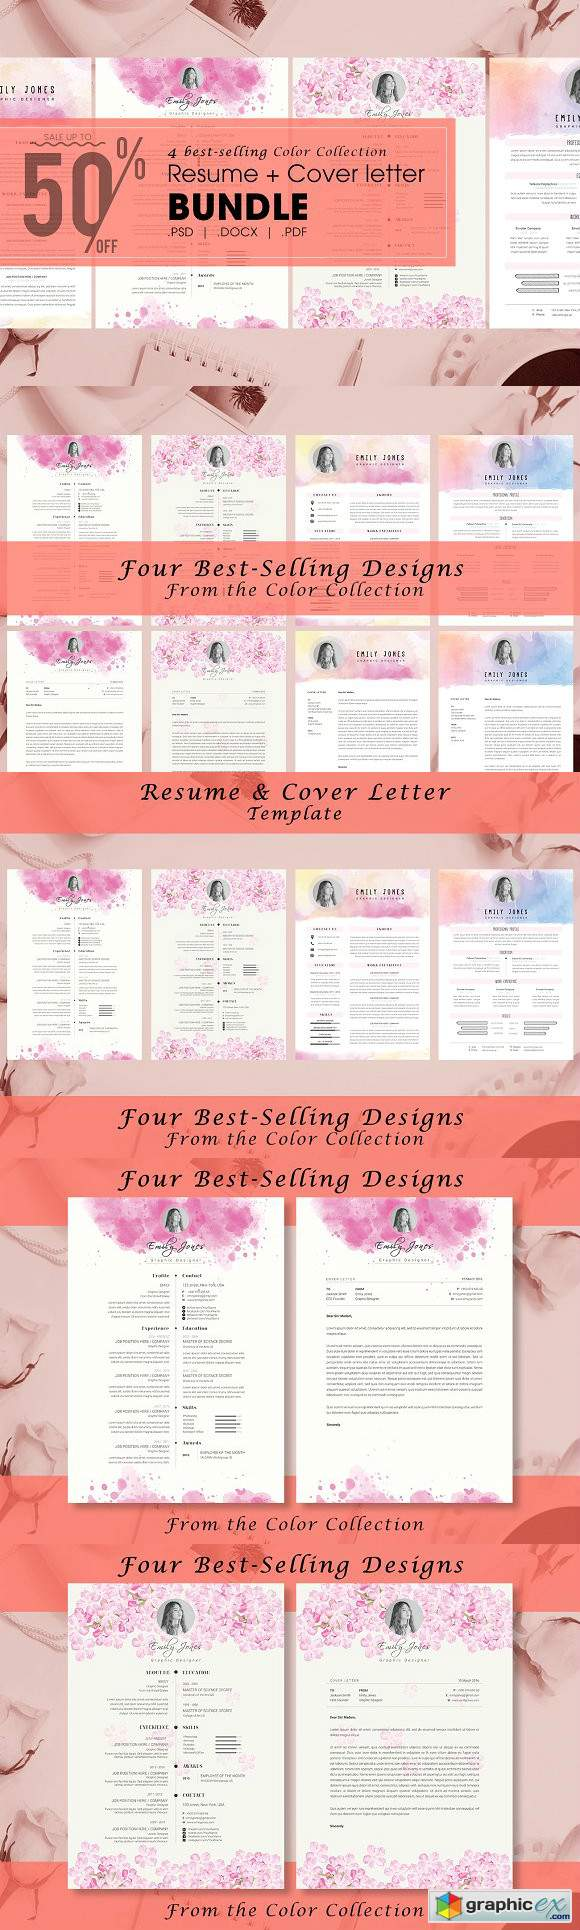 Resume Color Bundle